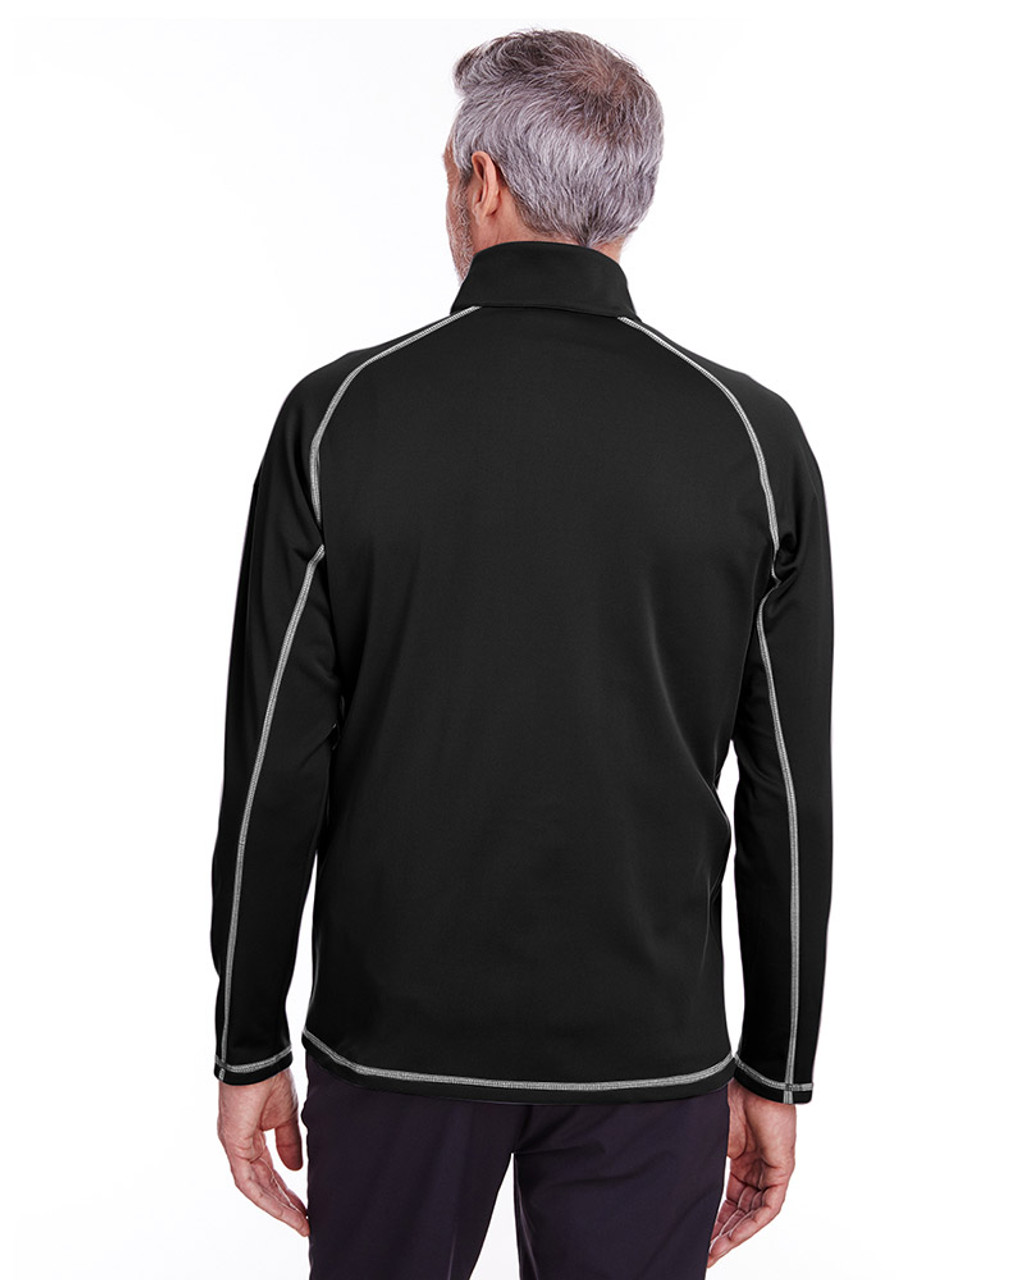 Puma Black - 596806 Puma Golf Men's Fairway Full-Zip Sweatshirt | Blankclothing.ca